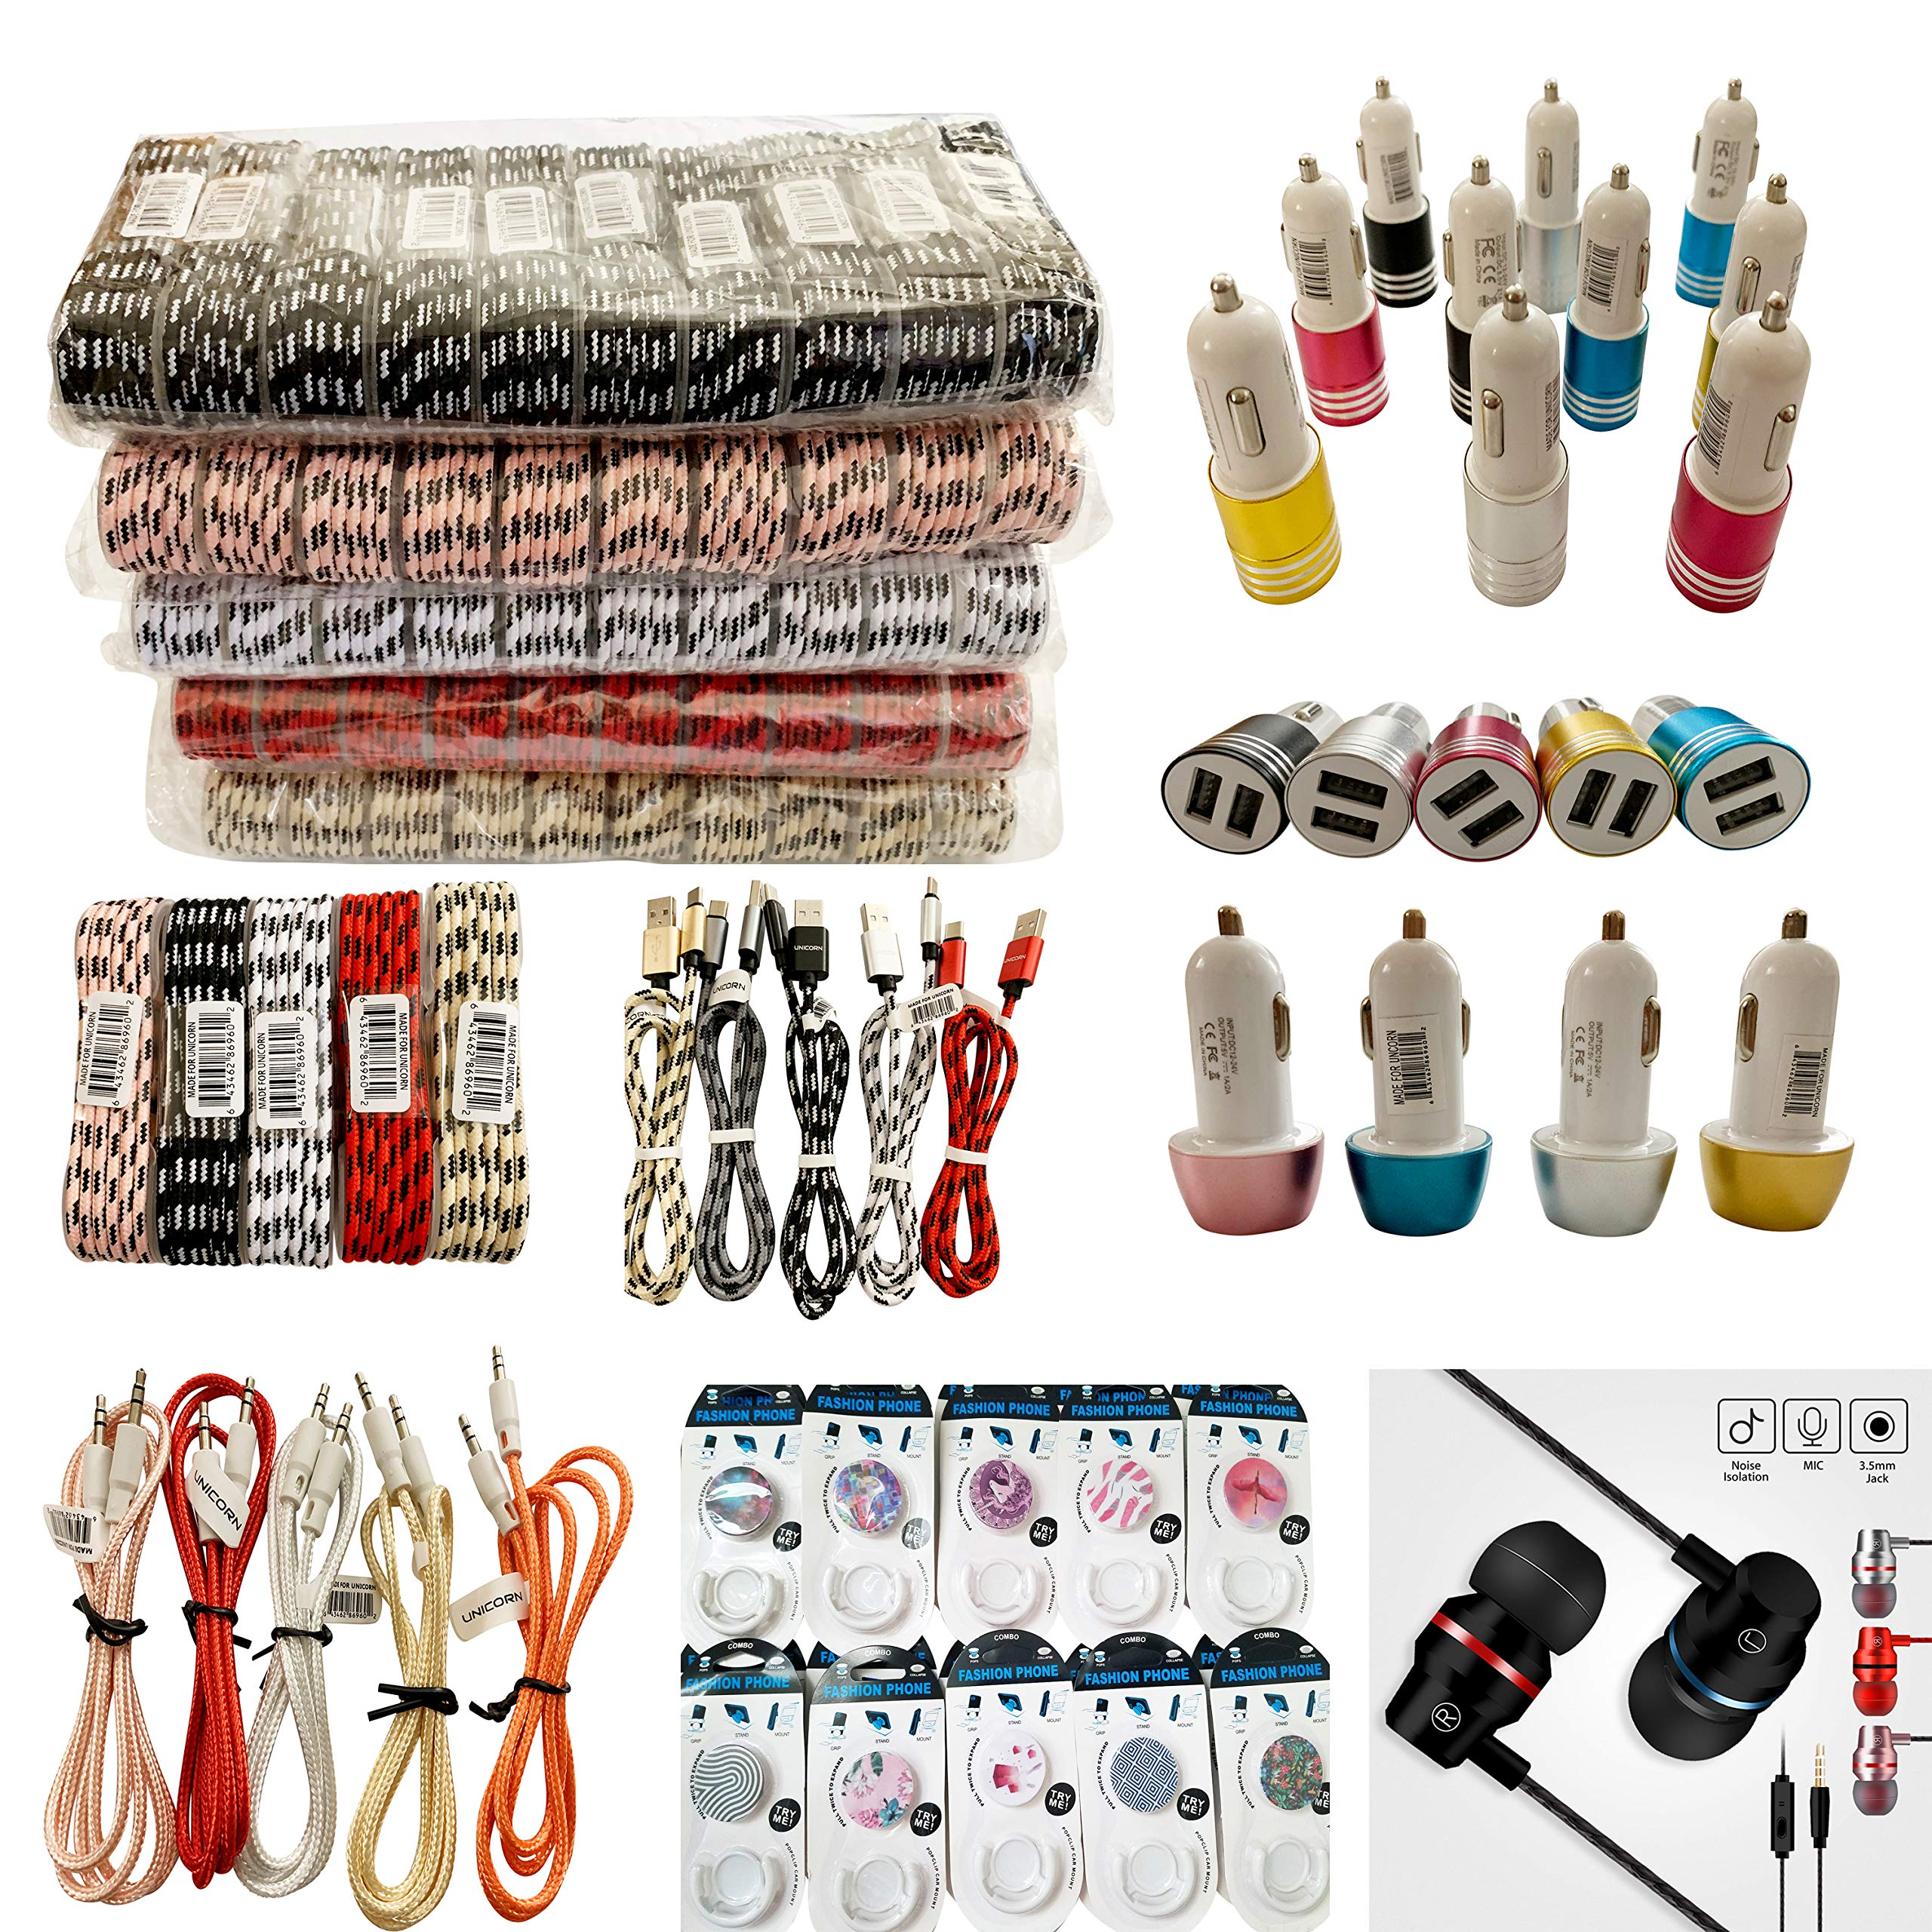 (100-Packs) Unicorn's Premium Cell Phone Accessories Mix Lot (Braided Charging Cables, Car Chargers, Aux Cables, Earphones, Phone Popup Holders) Wholesale Bulk Lot by Unicorn Trade